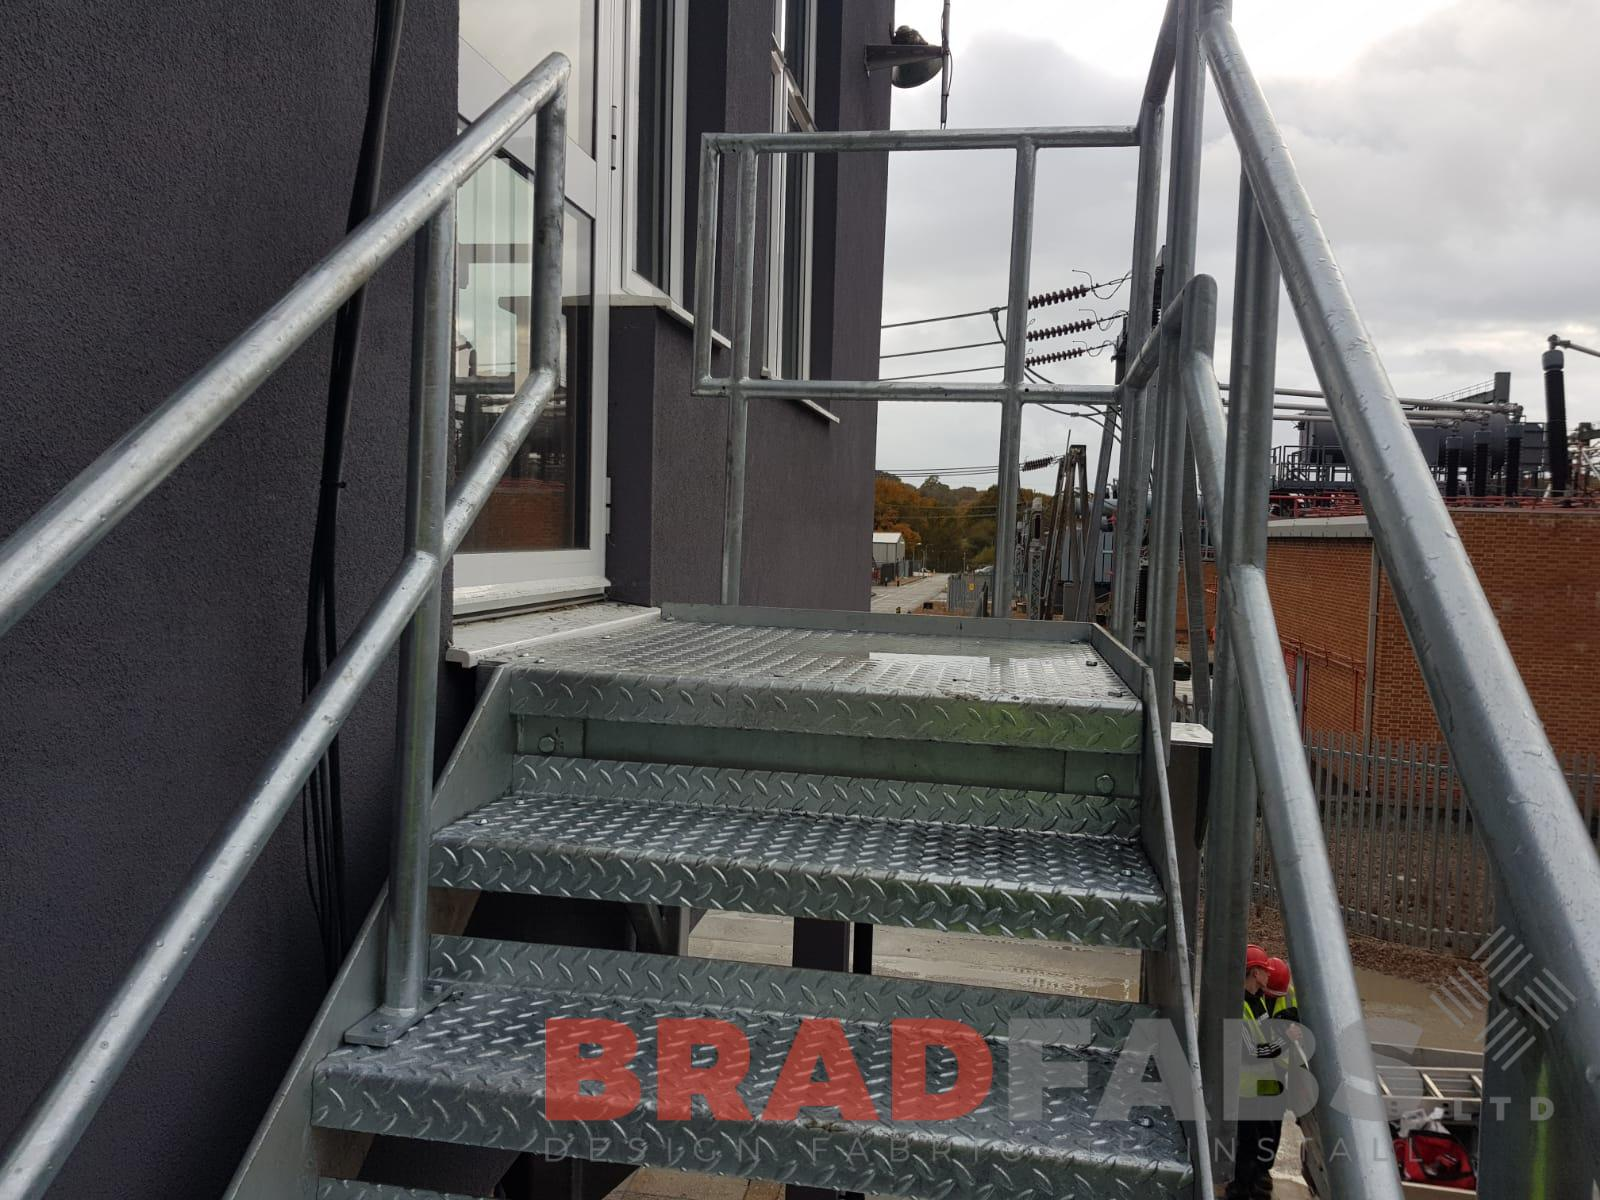 Mid and top rail balustrade with durbar treads, designed, fabricated and installed by Bradfabs